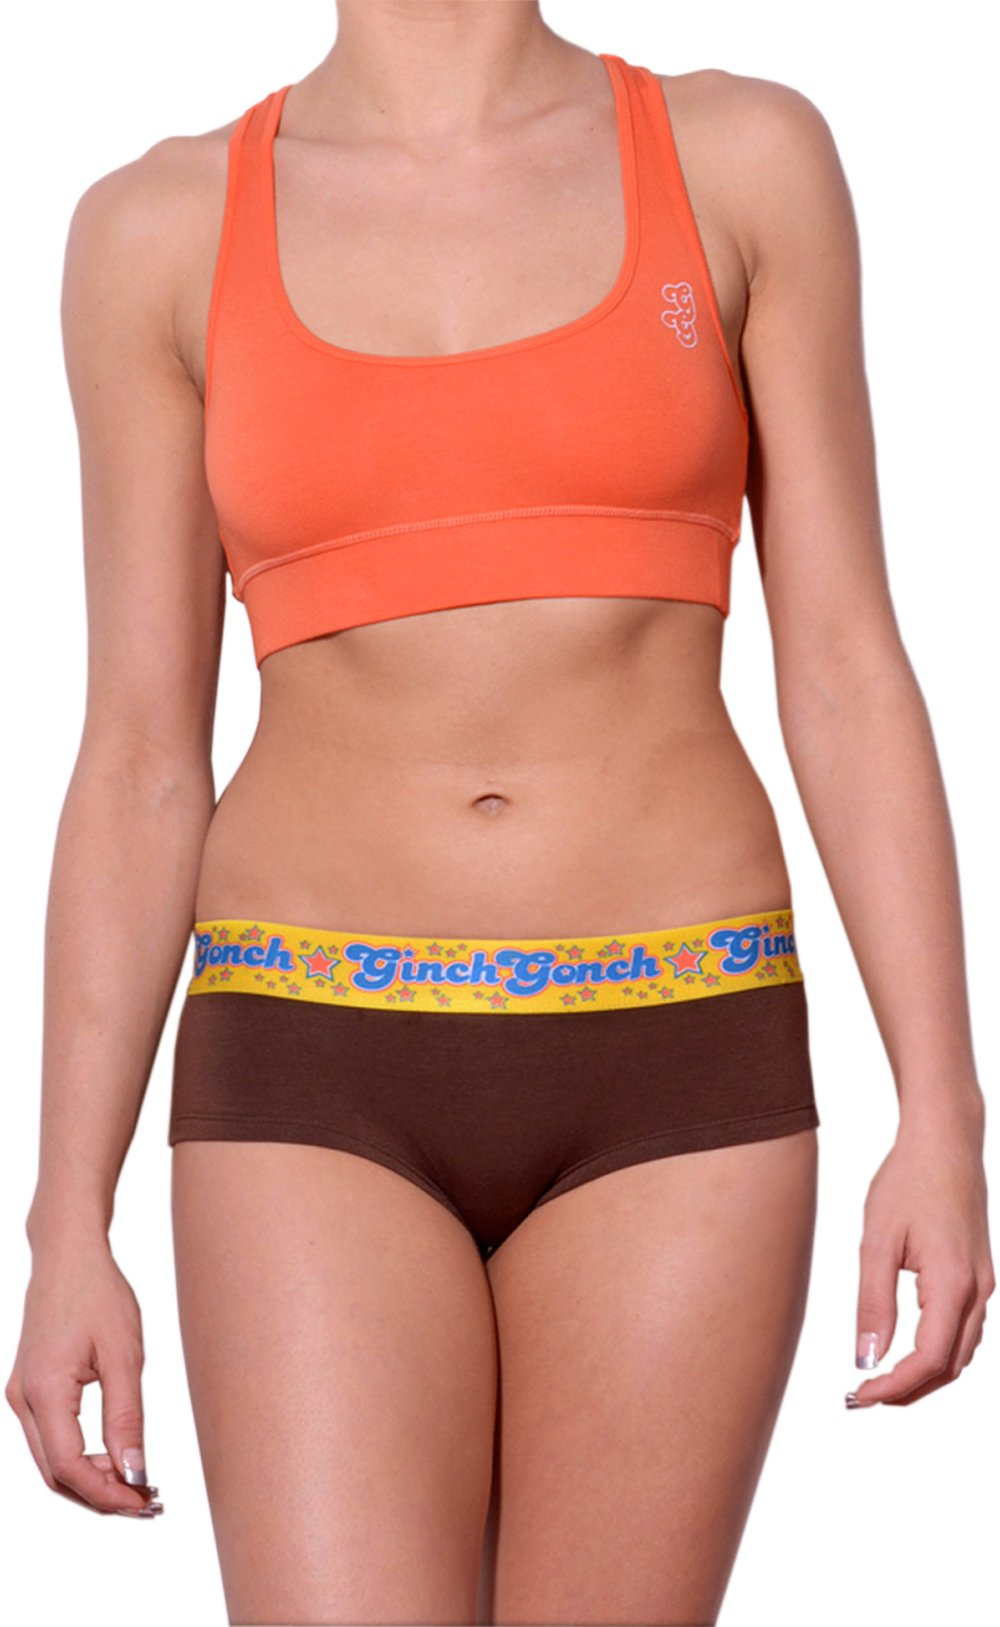 GG Ginch Gonch Lemon Heads women's cheeky boy cut underwear gogo with brown fabric, and a printed yellow waistband. front. shown with orange sports bra